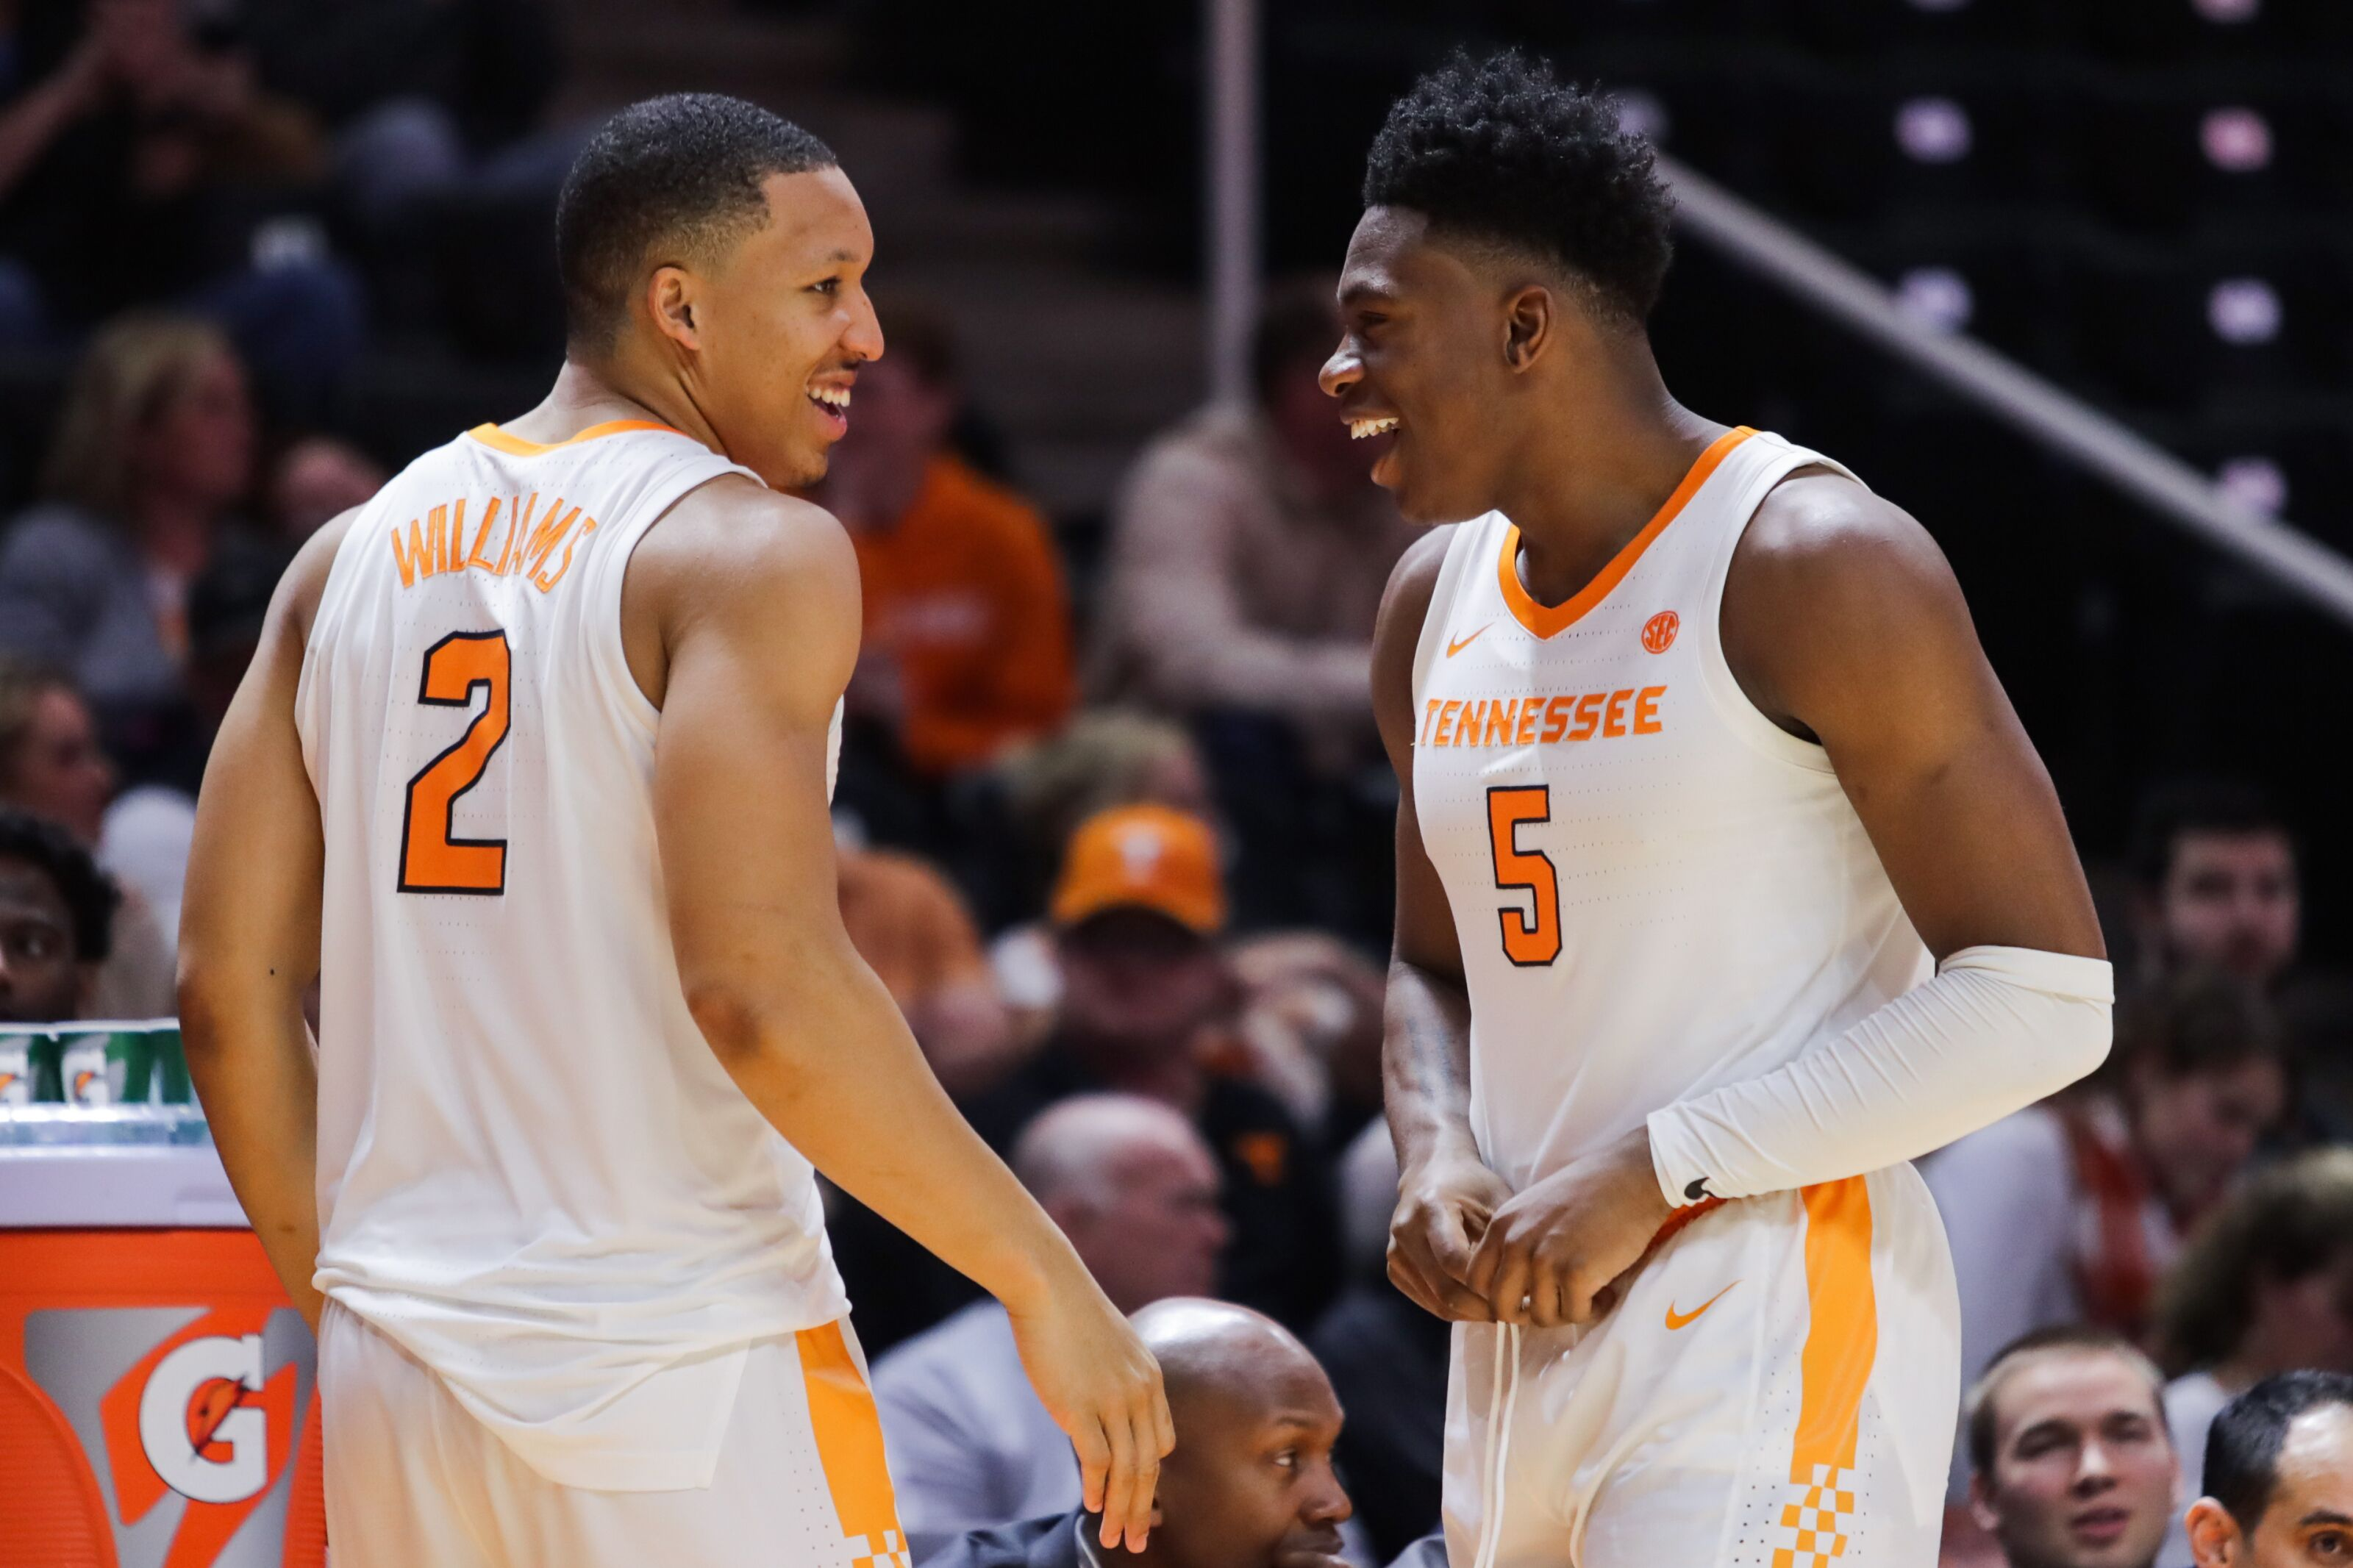 Tennessee Basketball: Grant Williams and Admiral Schofield have successful debuts